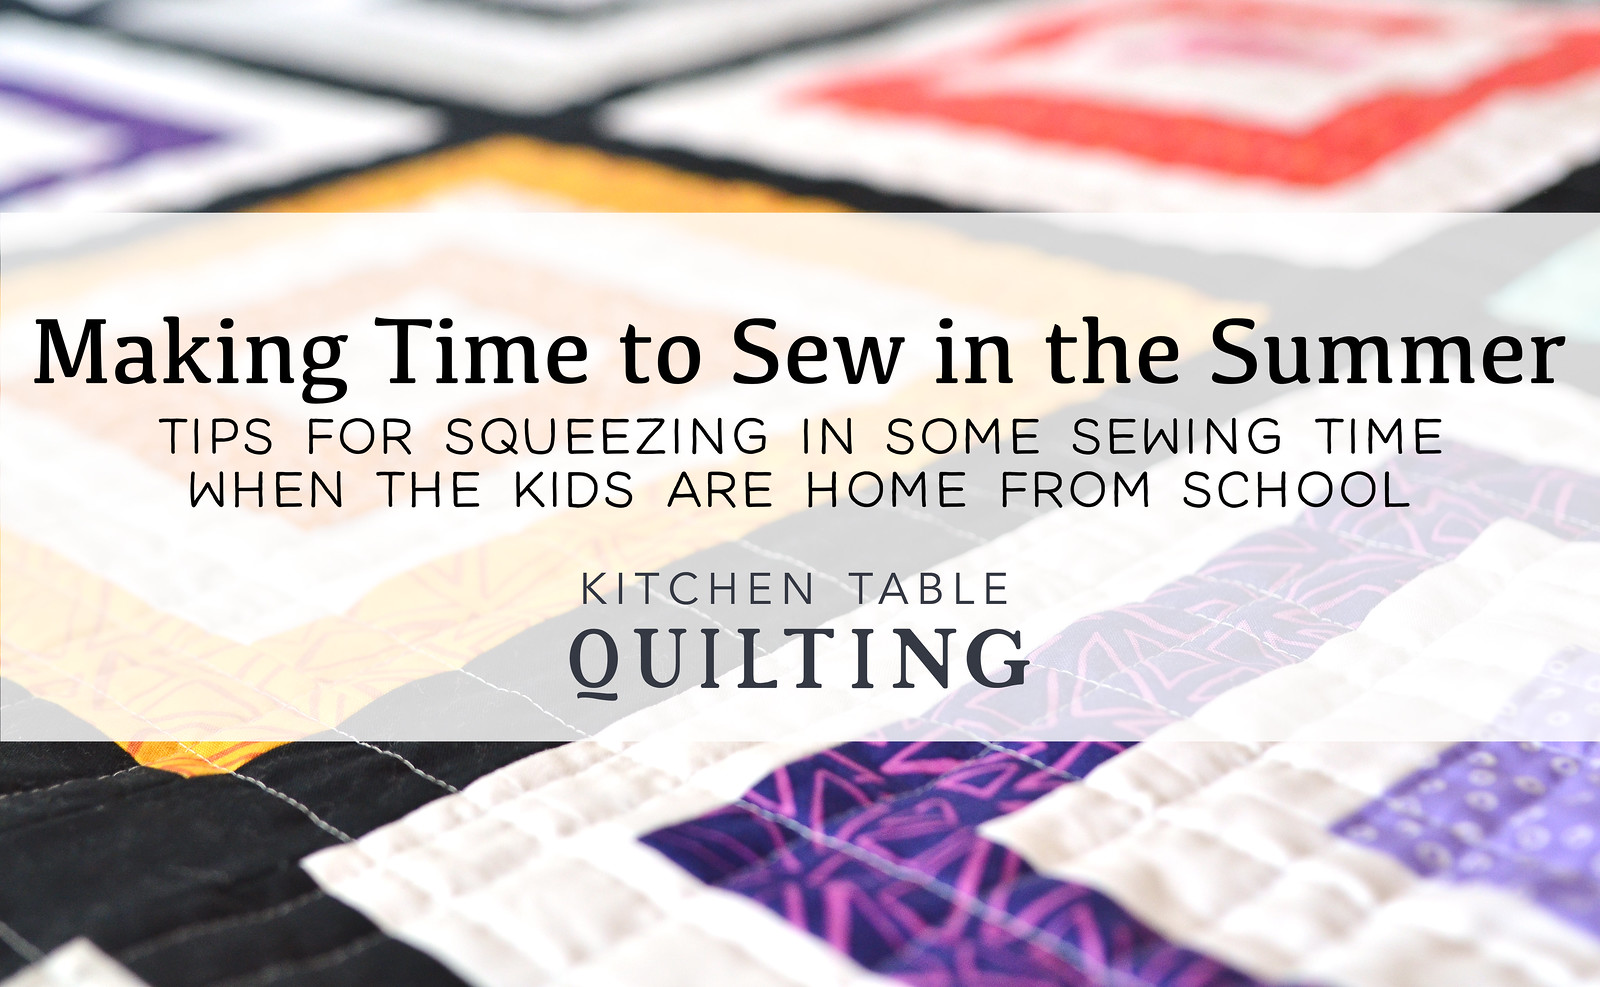 Summer Sewing - Making Time to Sew During the Summer